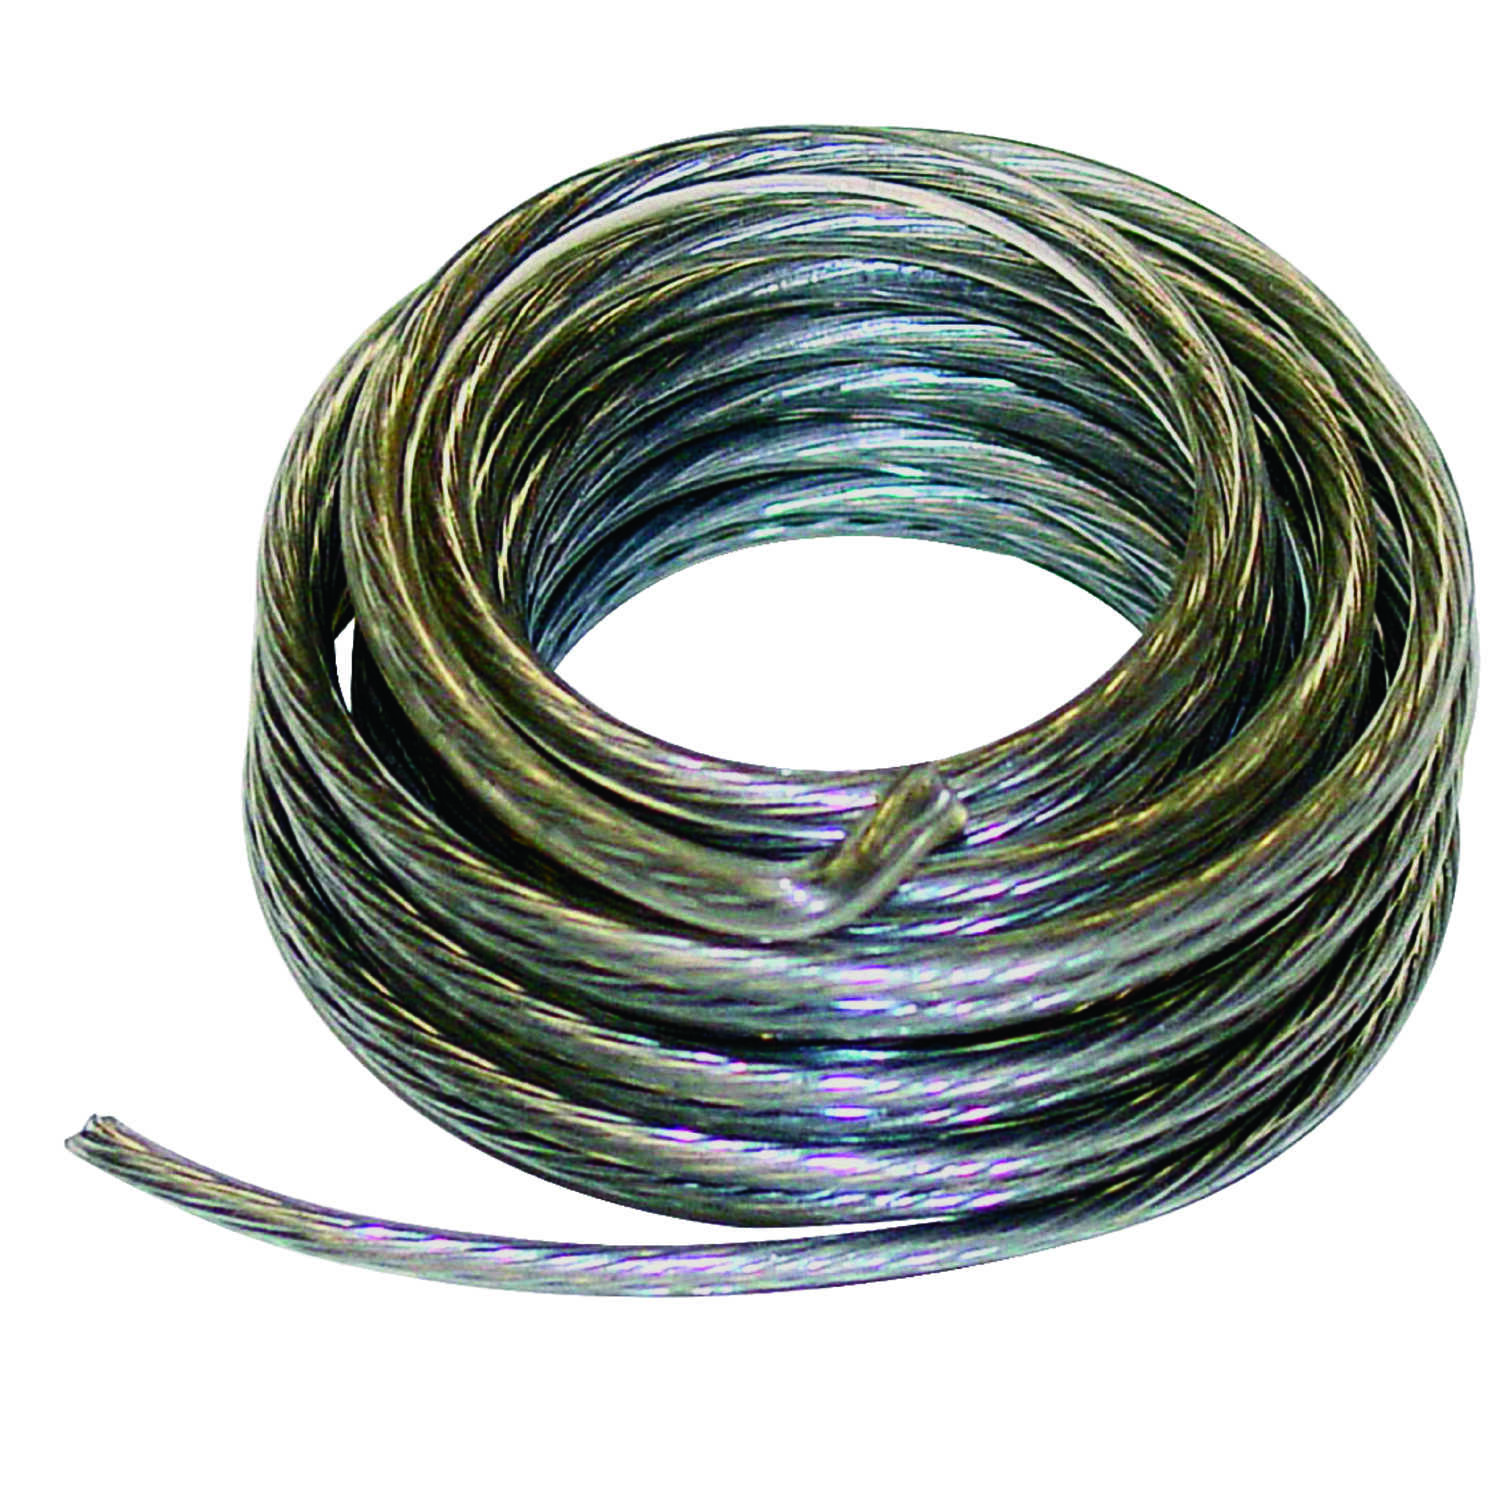 OOK  OOK  Plastic Coated  Stainless Steel  Picture Wire  50 lb. 1 pk